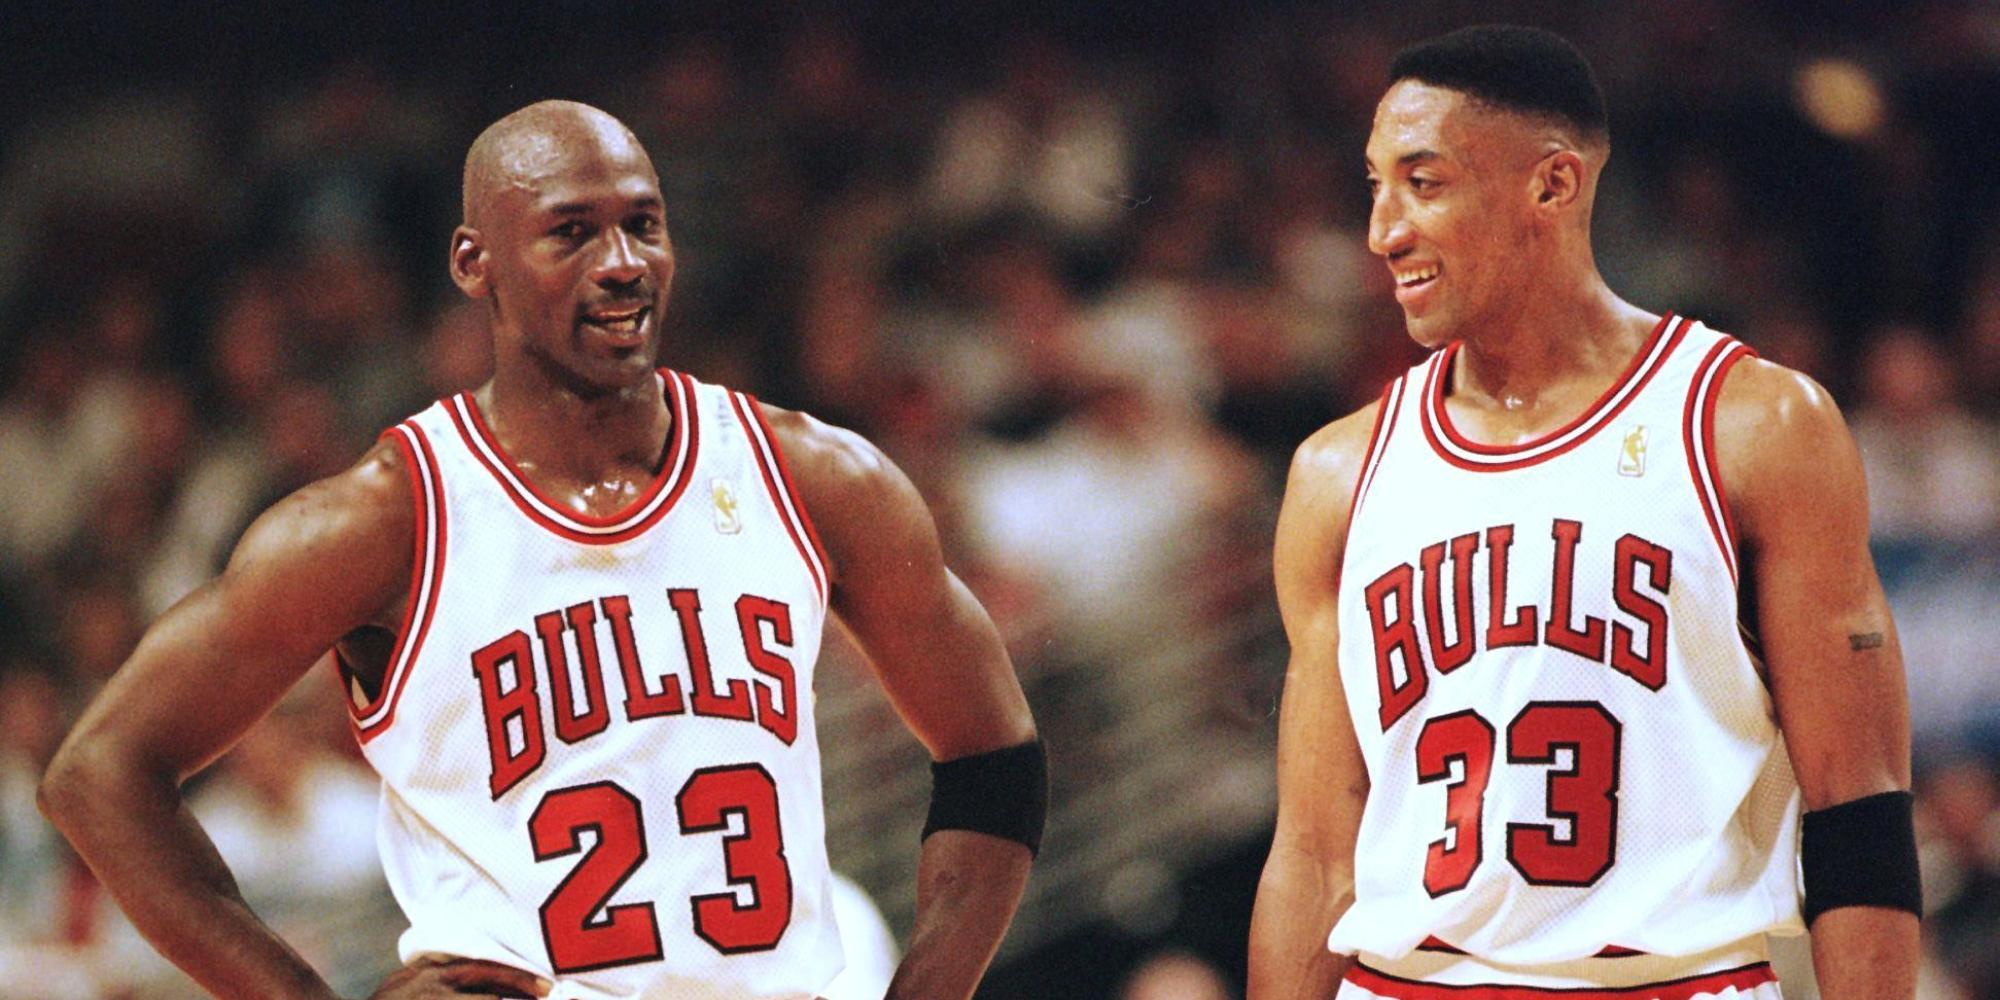 michael jordans second return to the nba Jordan started to drive right then pulled back after a slight nudge for a 17-foot jumper that propelled the bulls their sixth nba championship, spoiling utah's dreams for the second straight season.